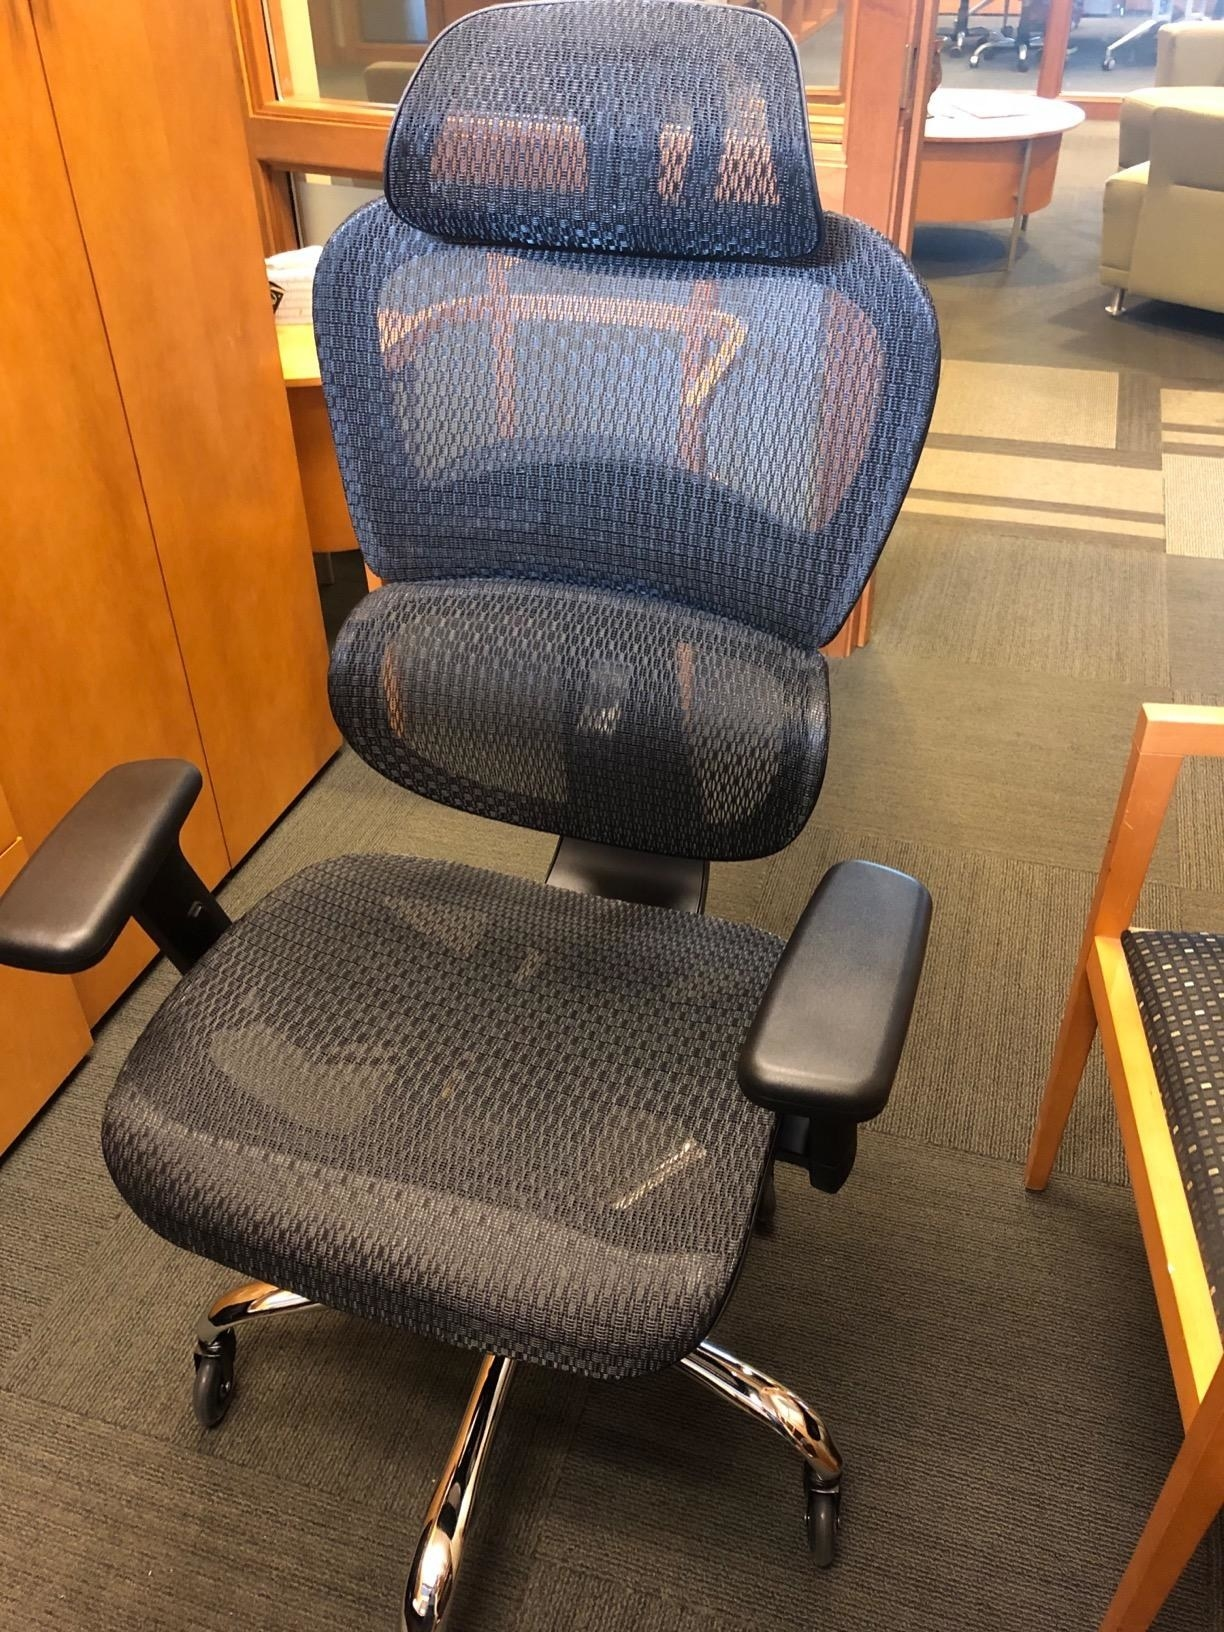 Reviewer photo of the mesh chair